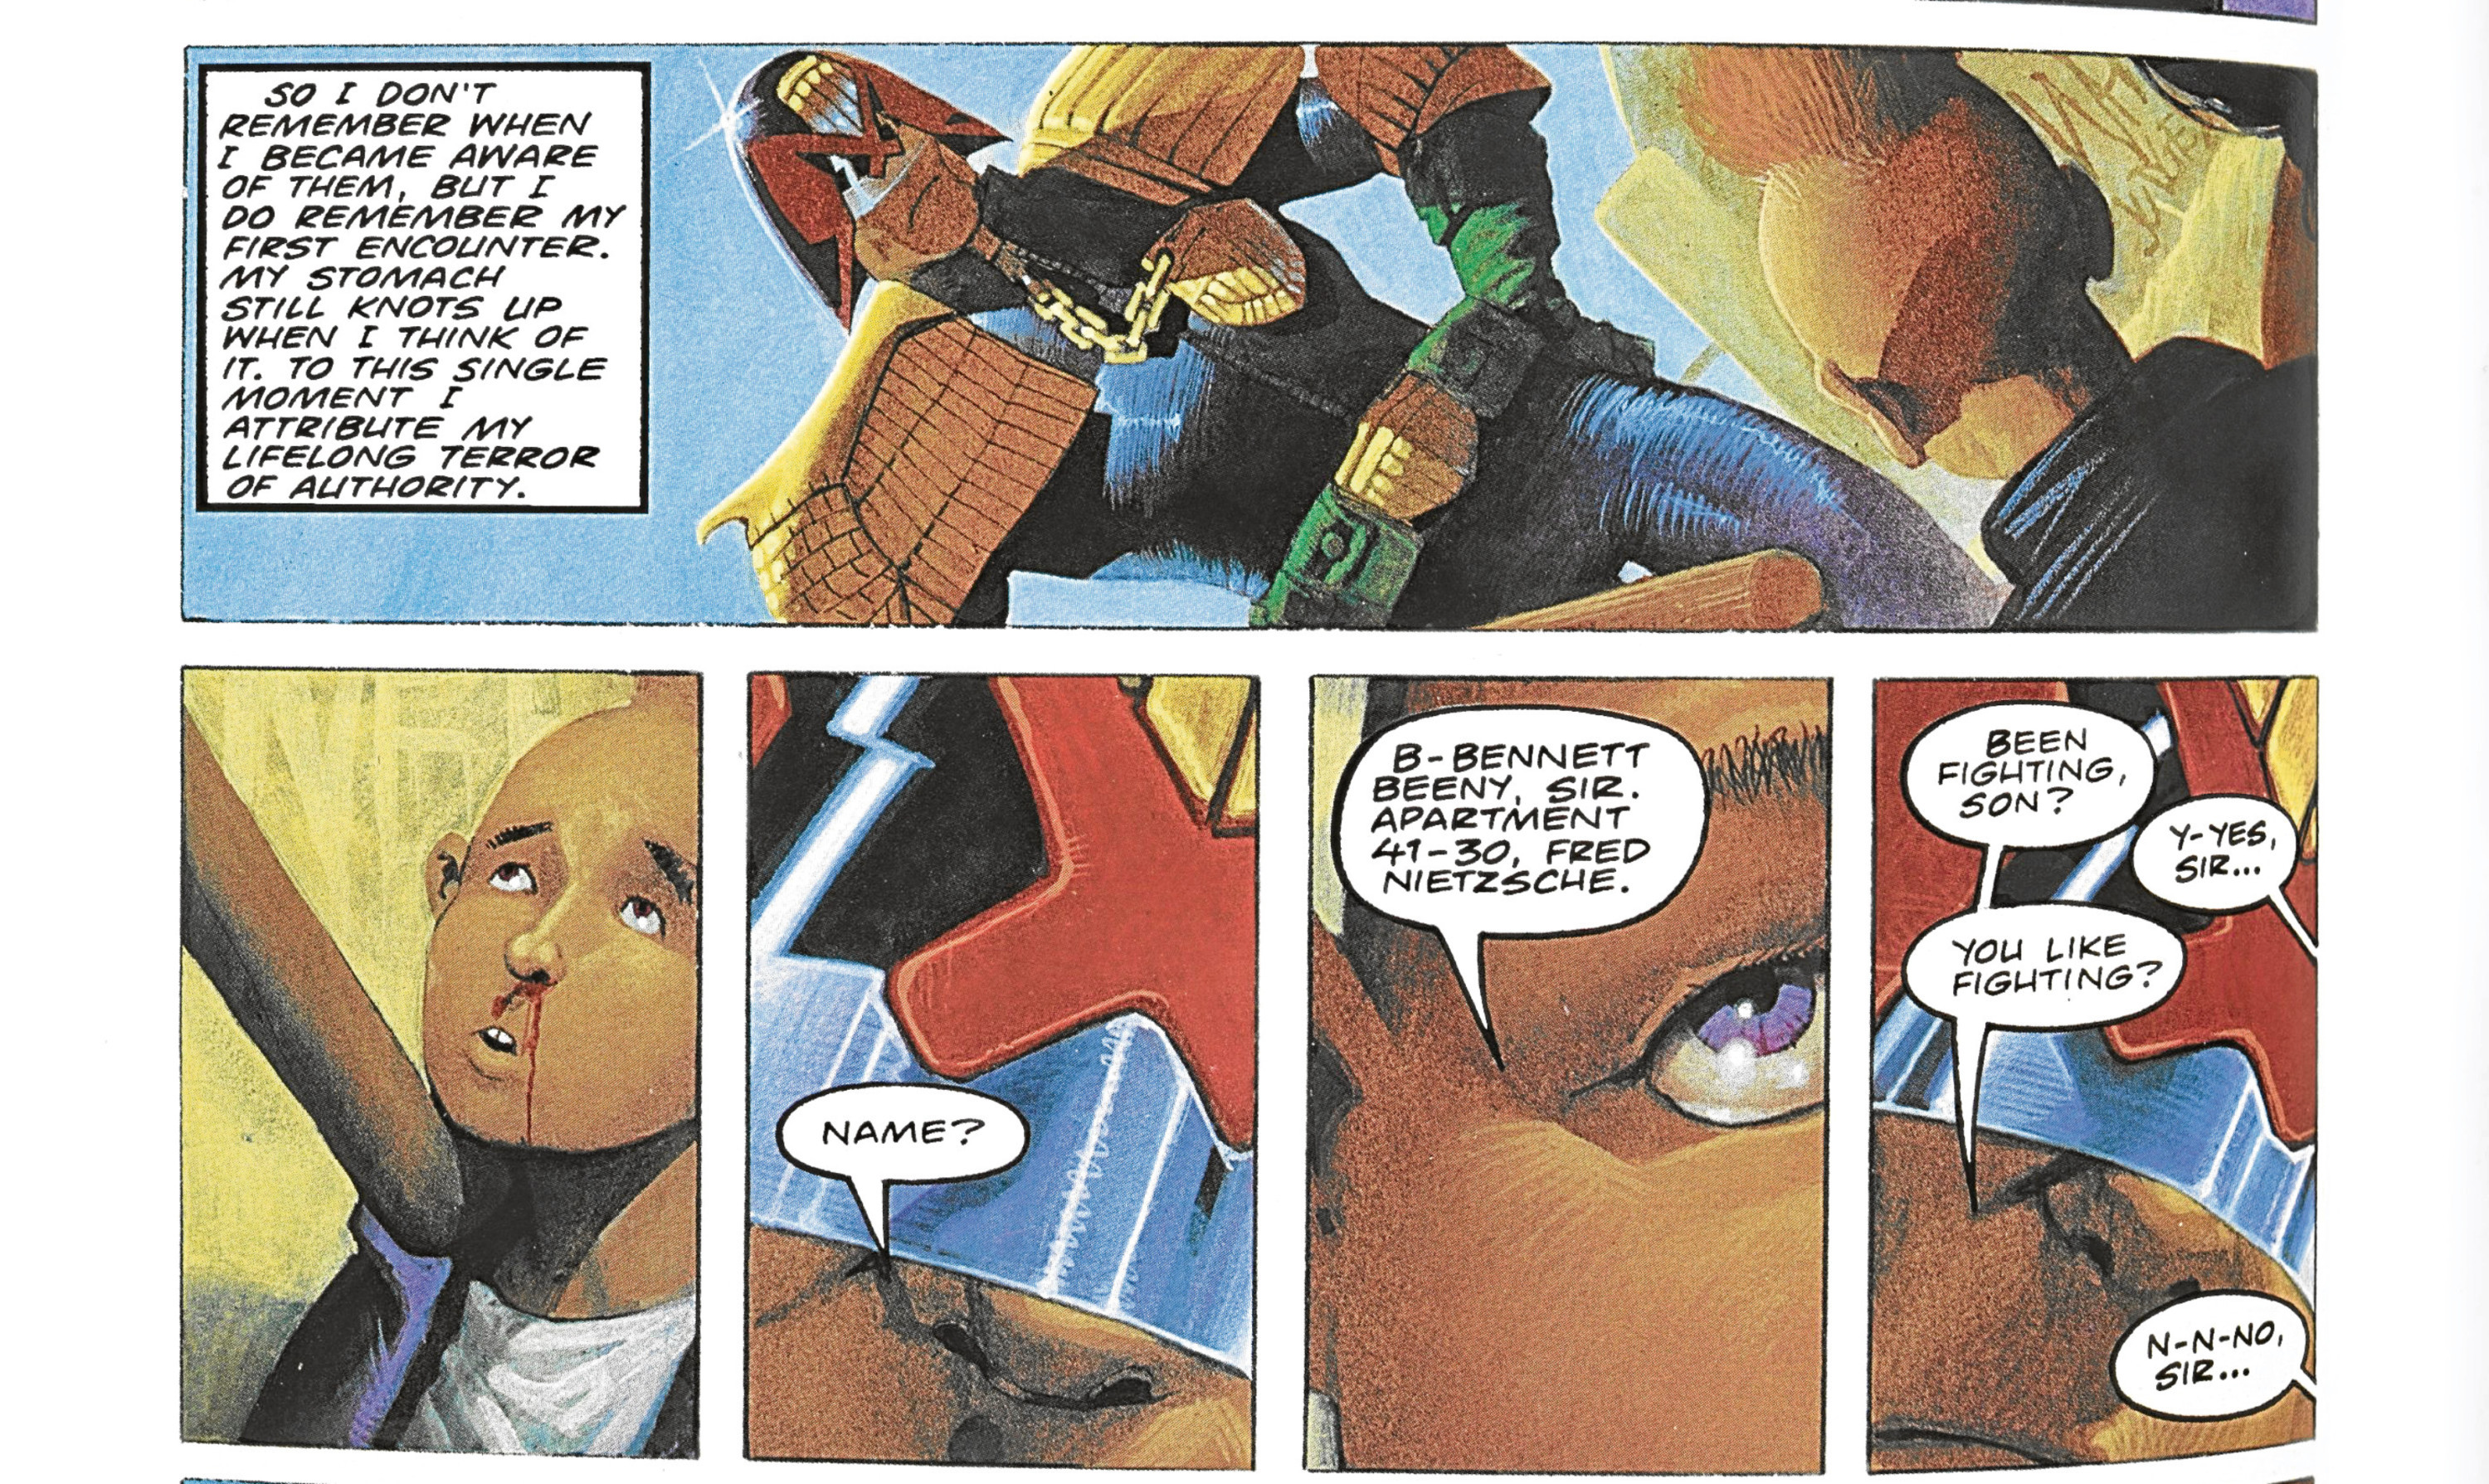 A Judge Dredd comic strip. This coming weekend marks the 40th anniversary of 2000 AD comic, which has had a profound effect on Mike.